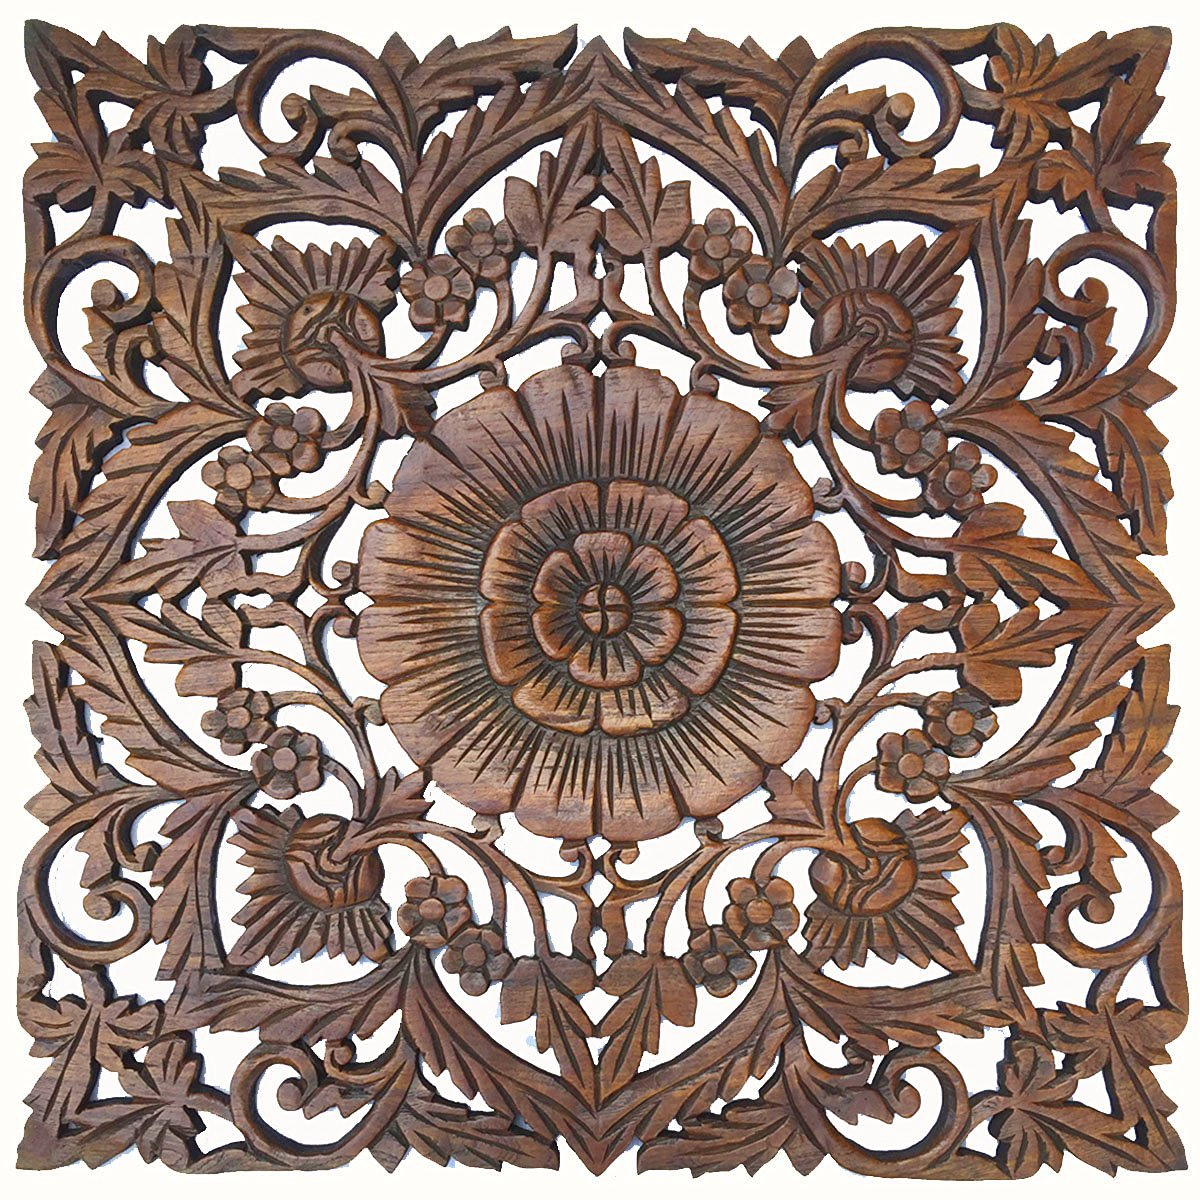 "Large Wood Wall Art- Oriental Carved Wood Wall Decor. Floral Wall Decor. Asian Home Decoration. Rustic Home Decor. Size 24""x24""x0.5"" (Oak)"